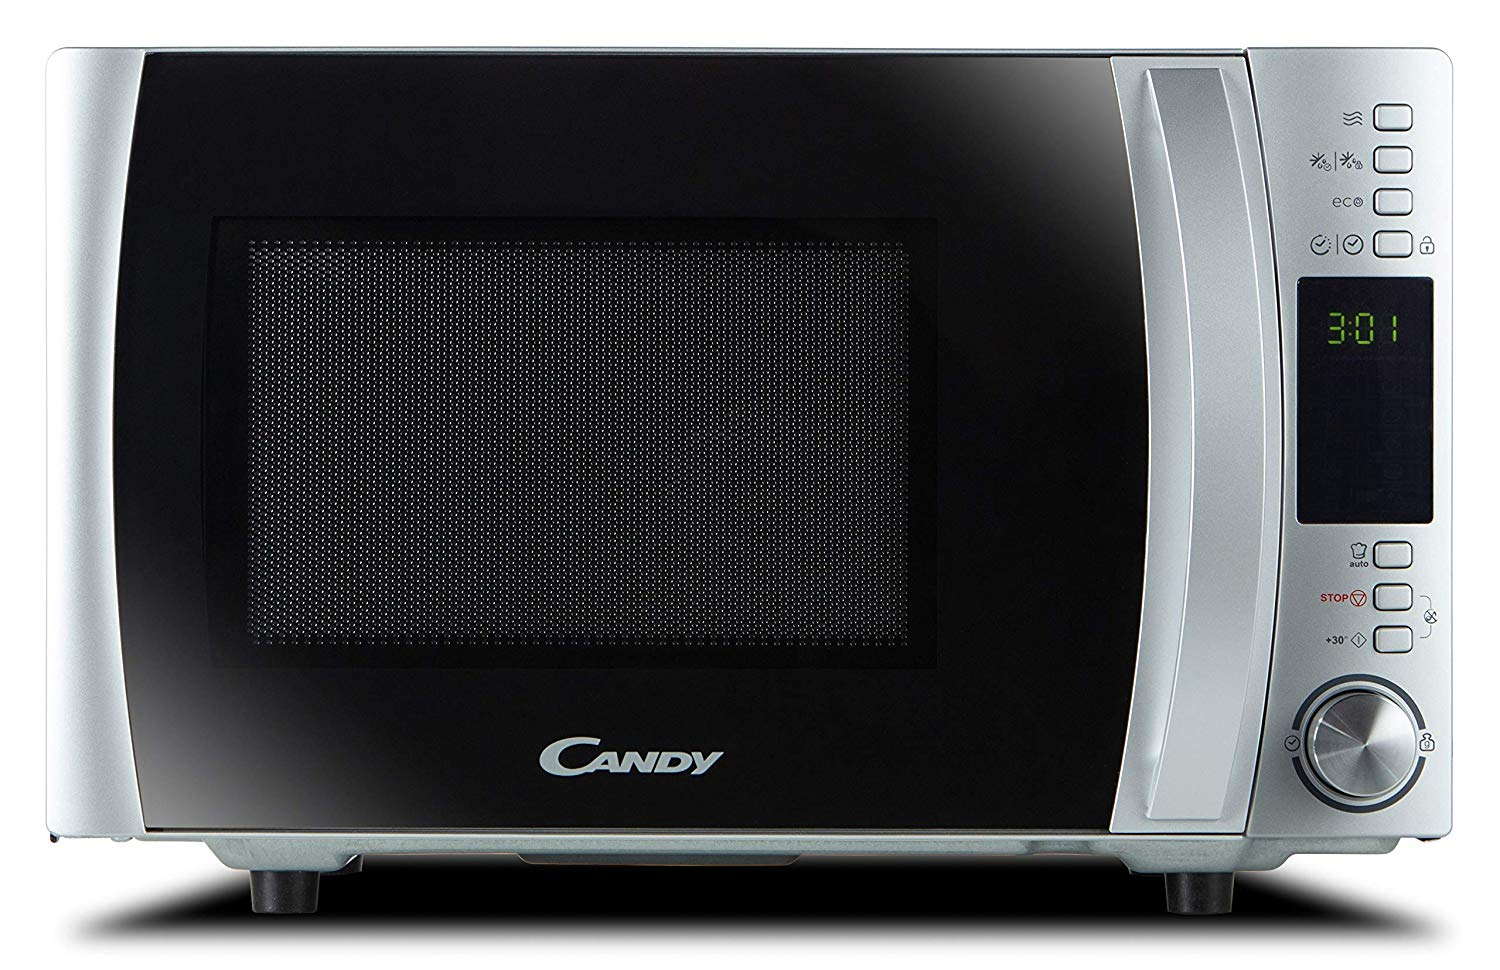 Candy 22L Digital 800W Solo Microwave